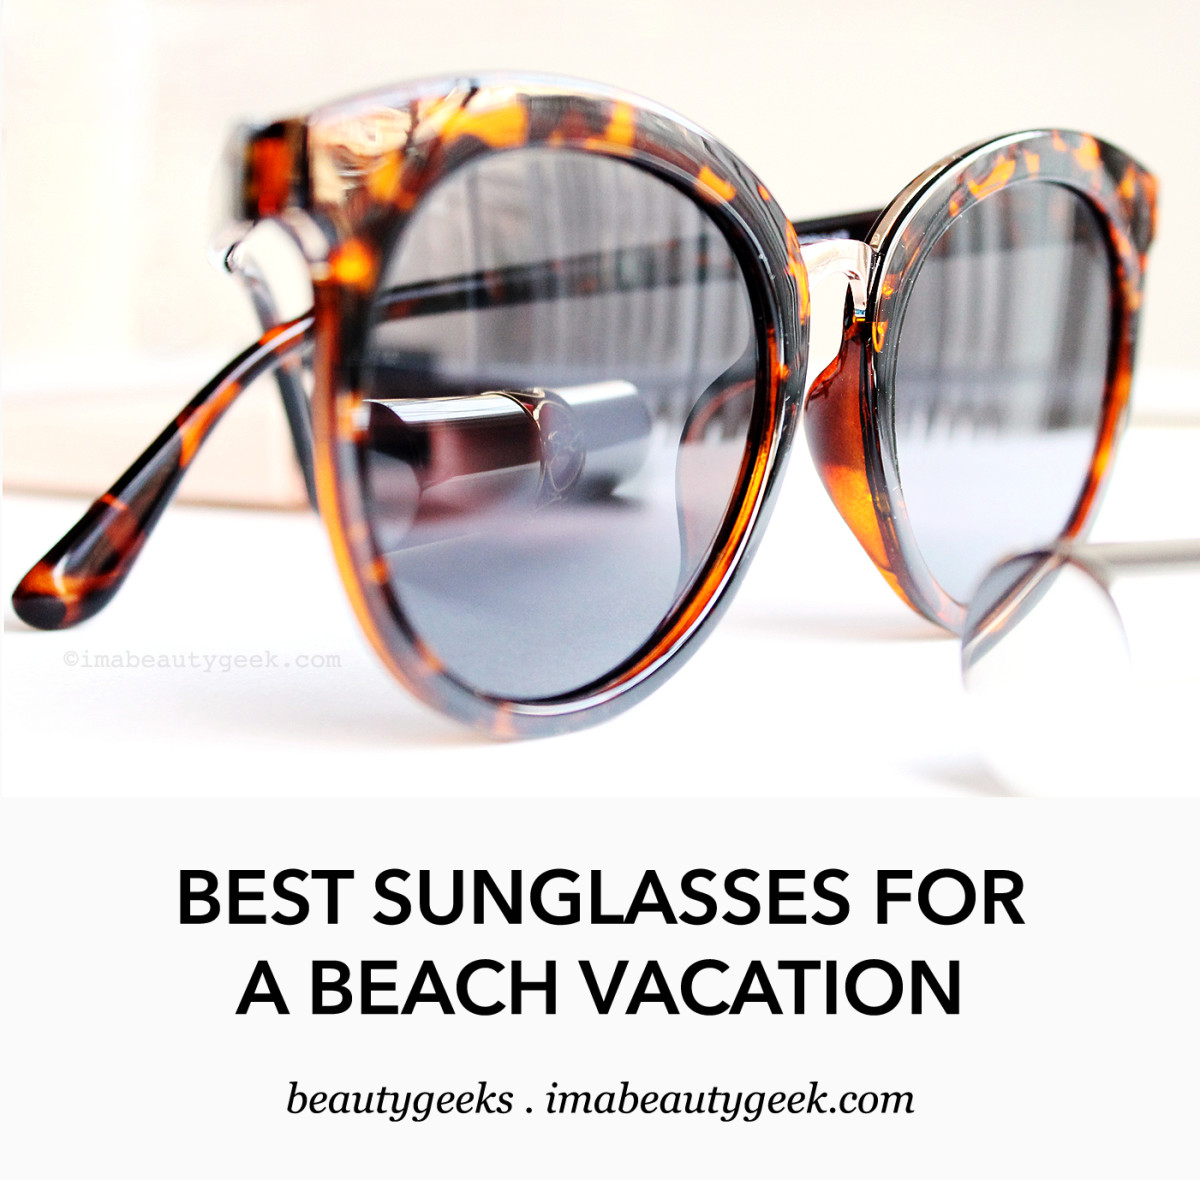 Best sunglasses for a beach vacation